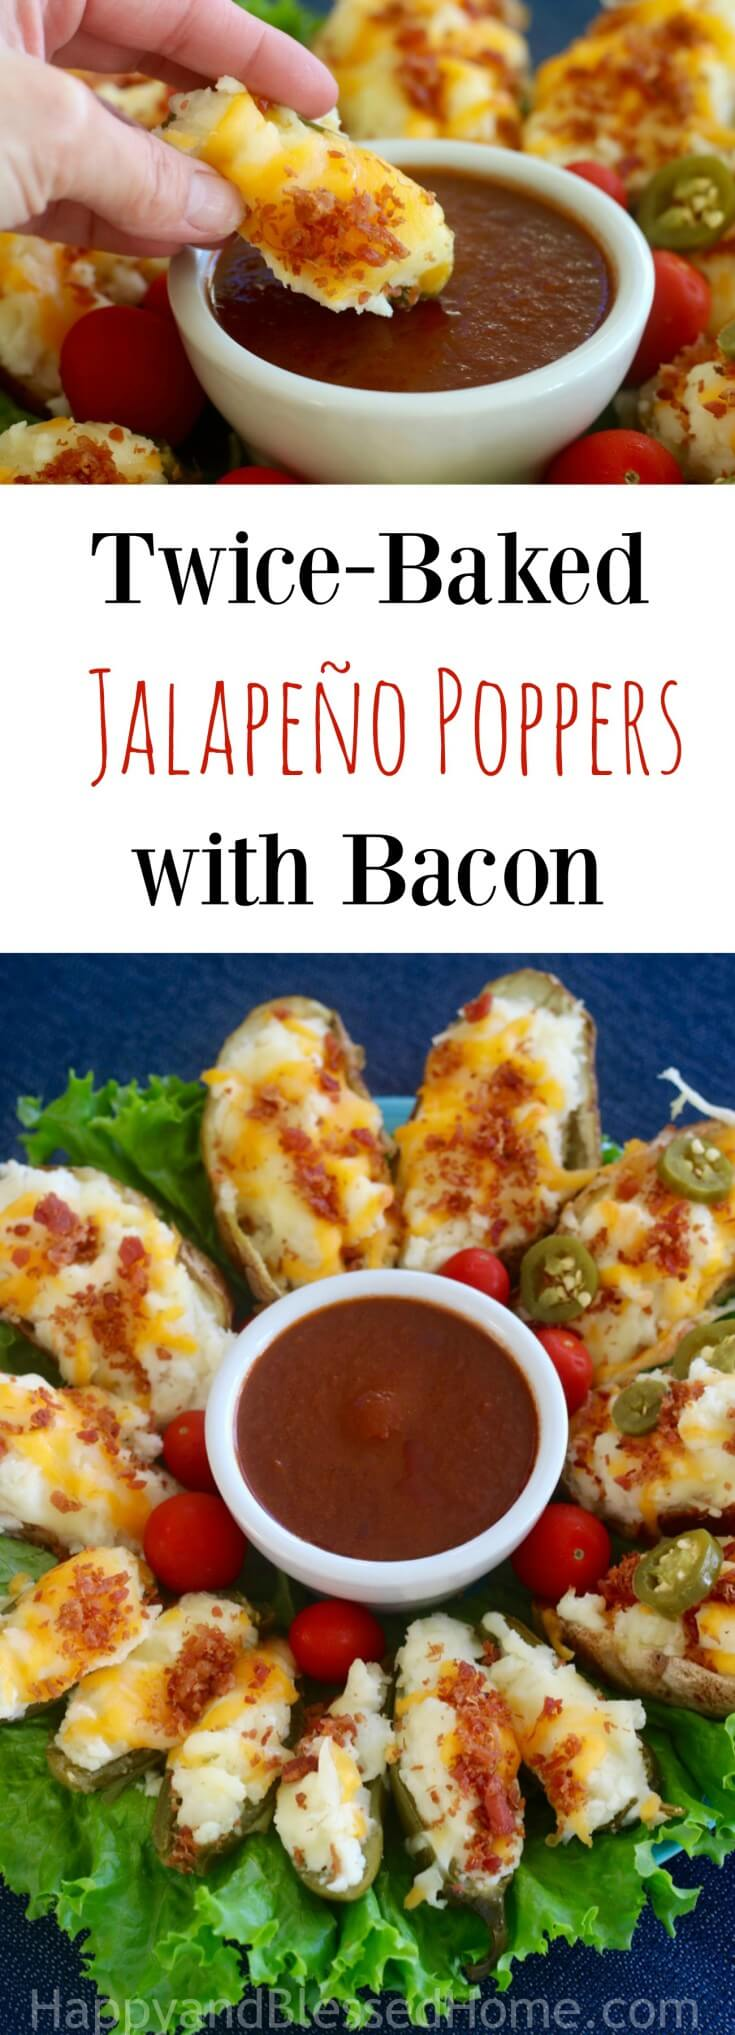 Easy Appetizer Recipe for Twice-Baked Jalapeño Poppers with Bacon